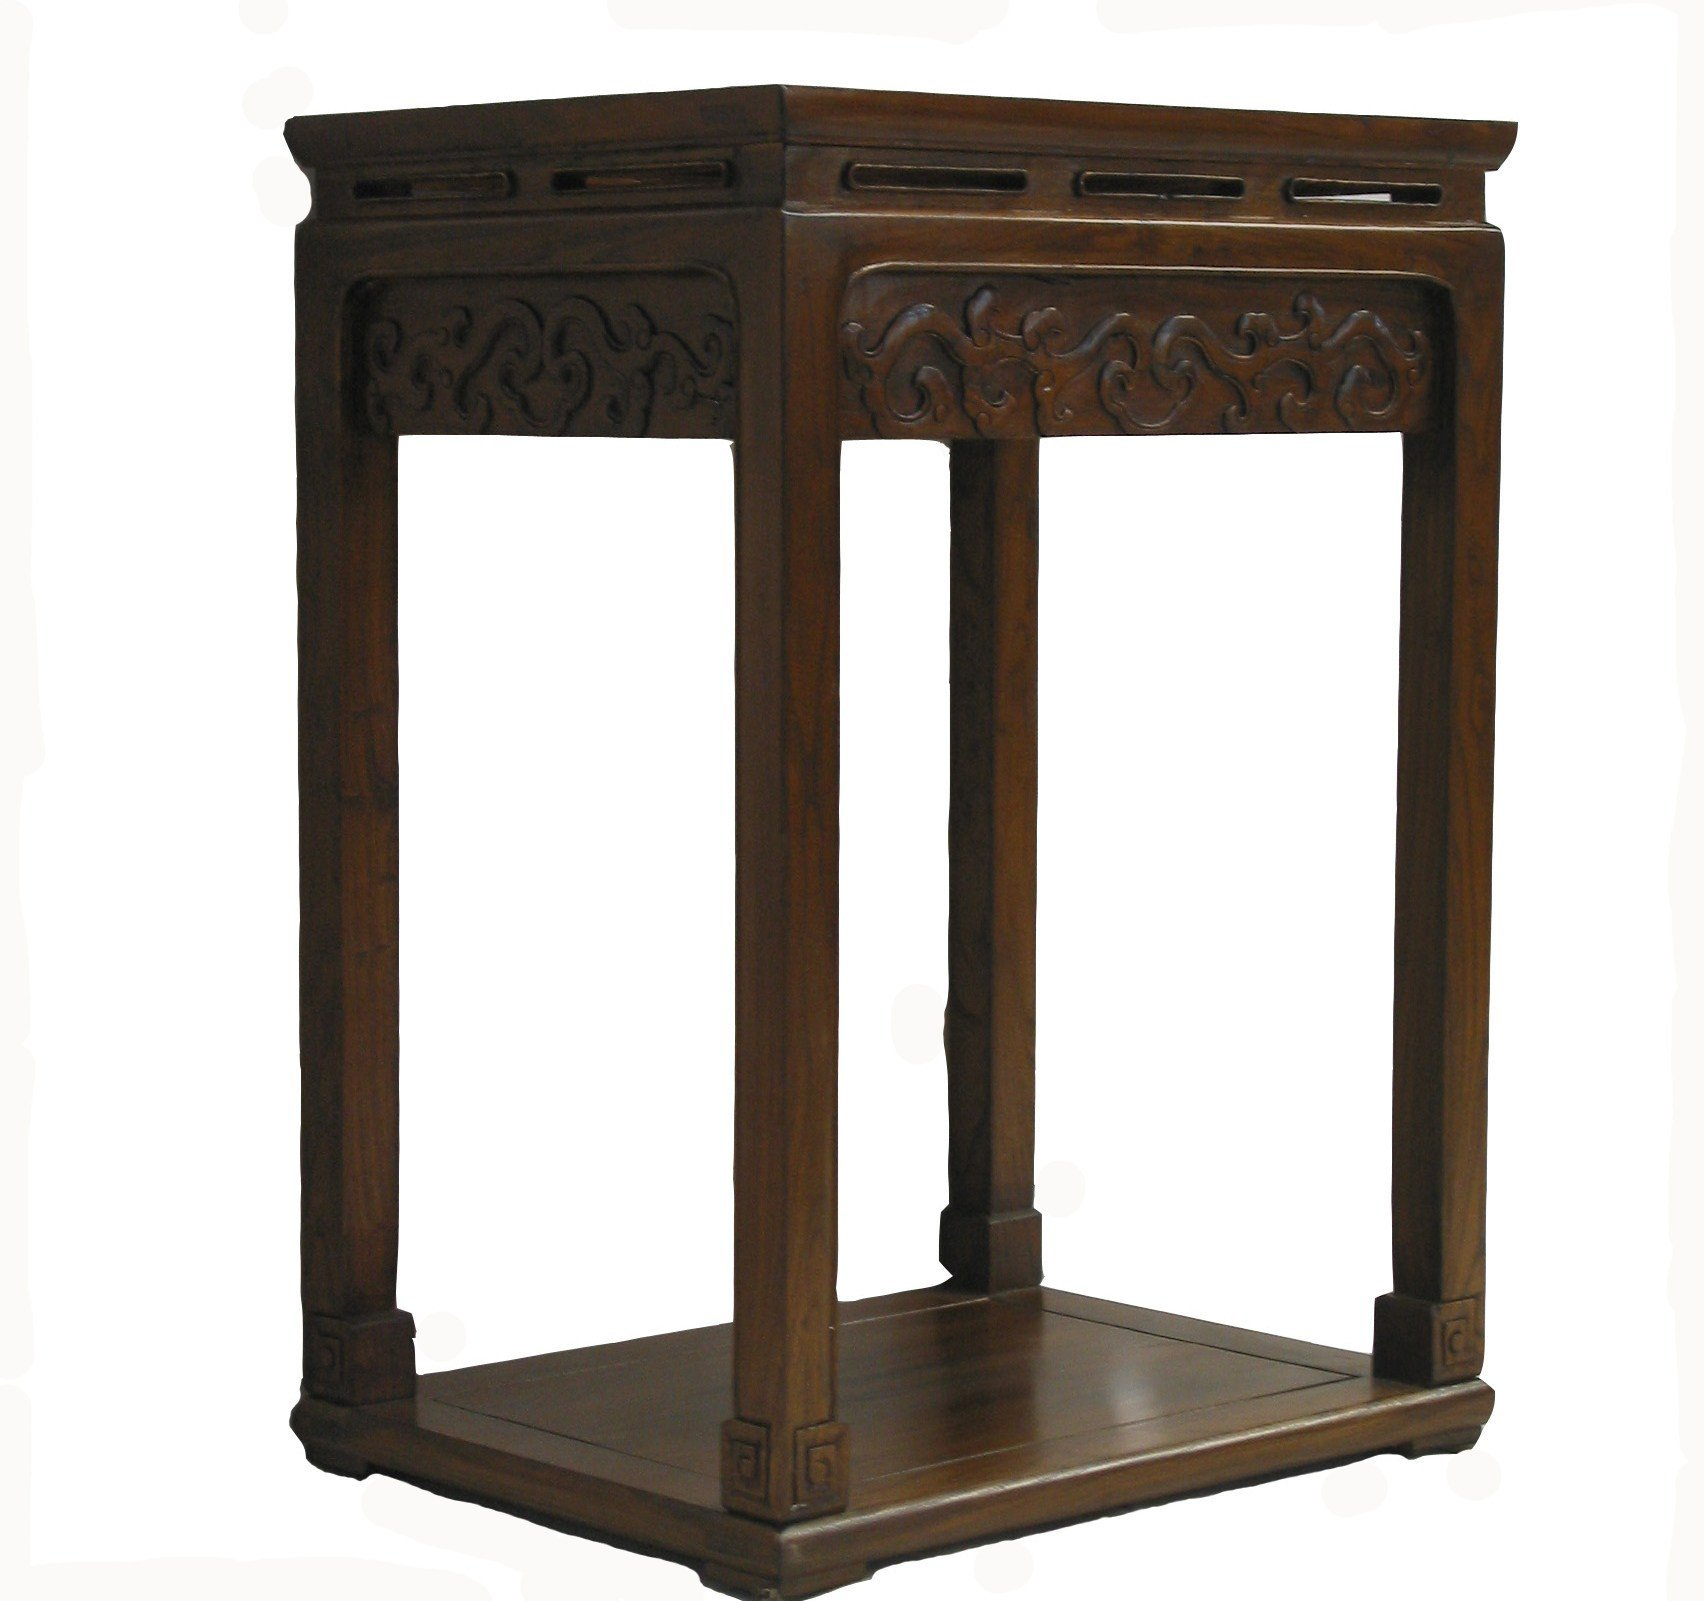 carved accent table dyag east wood wire end gold mats patio drink hardwood wooden plant stands indoor small sofas for spaces skinny white door bars laminate flooring silver area